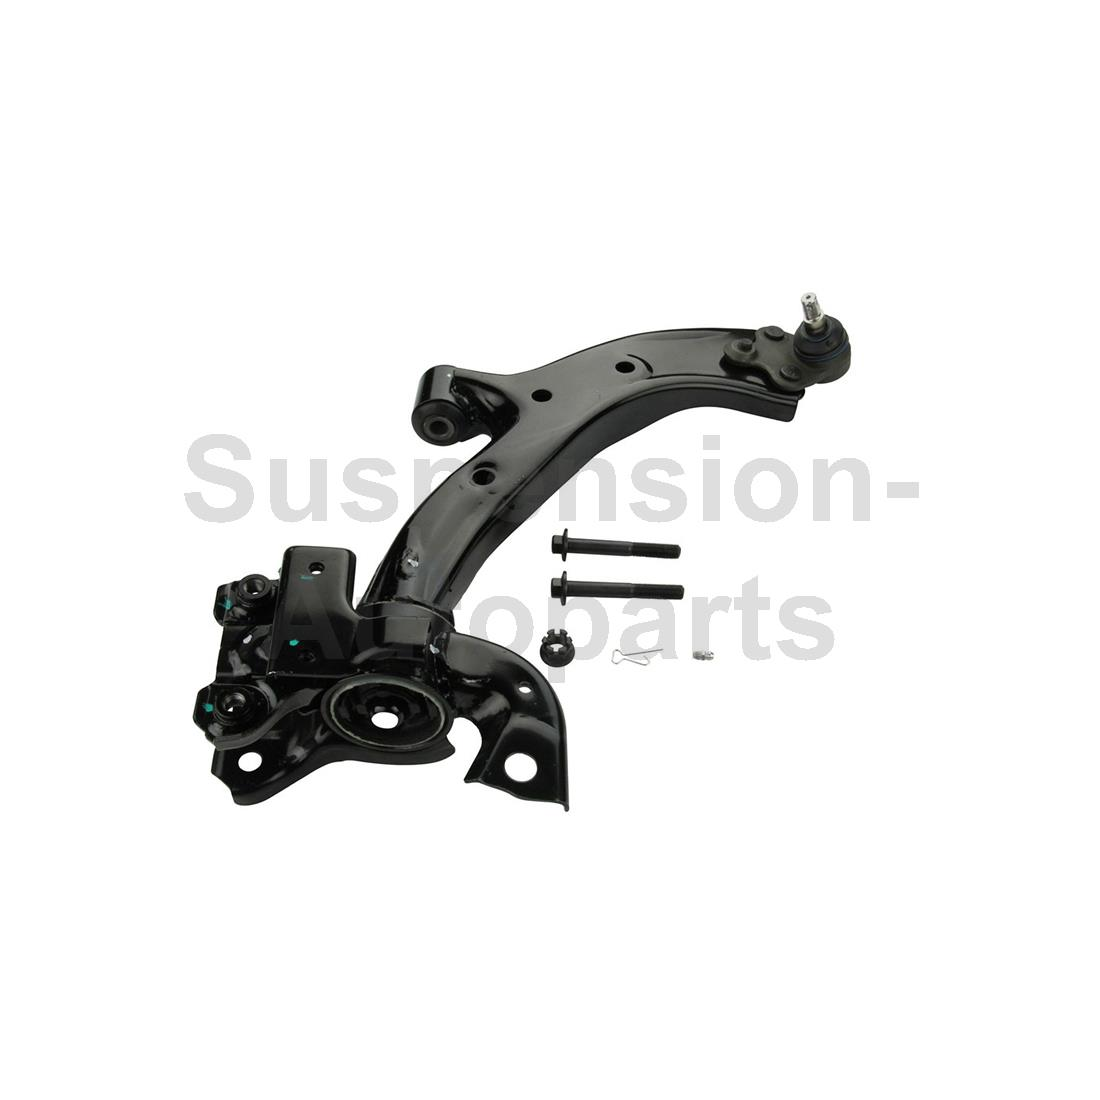 Suspension Control Arm and Ball Joint Assembly Front Left Lower fits 13-16 RDX